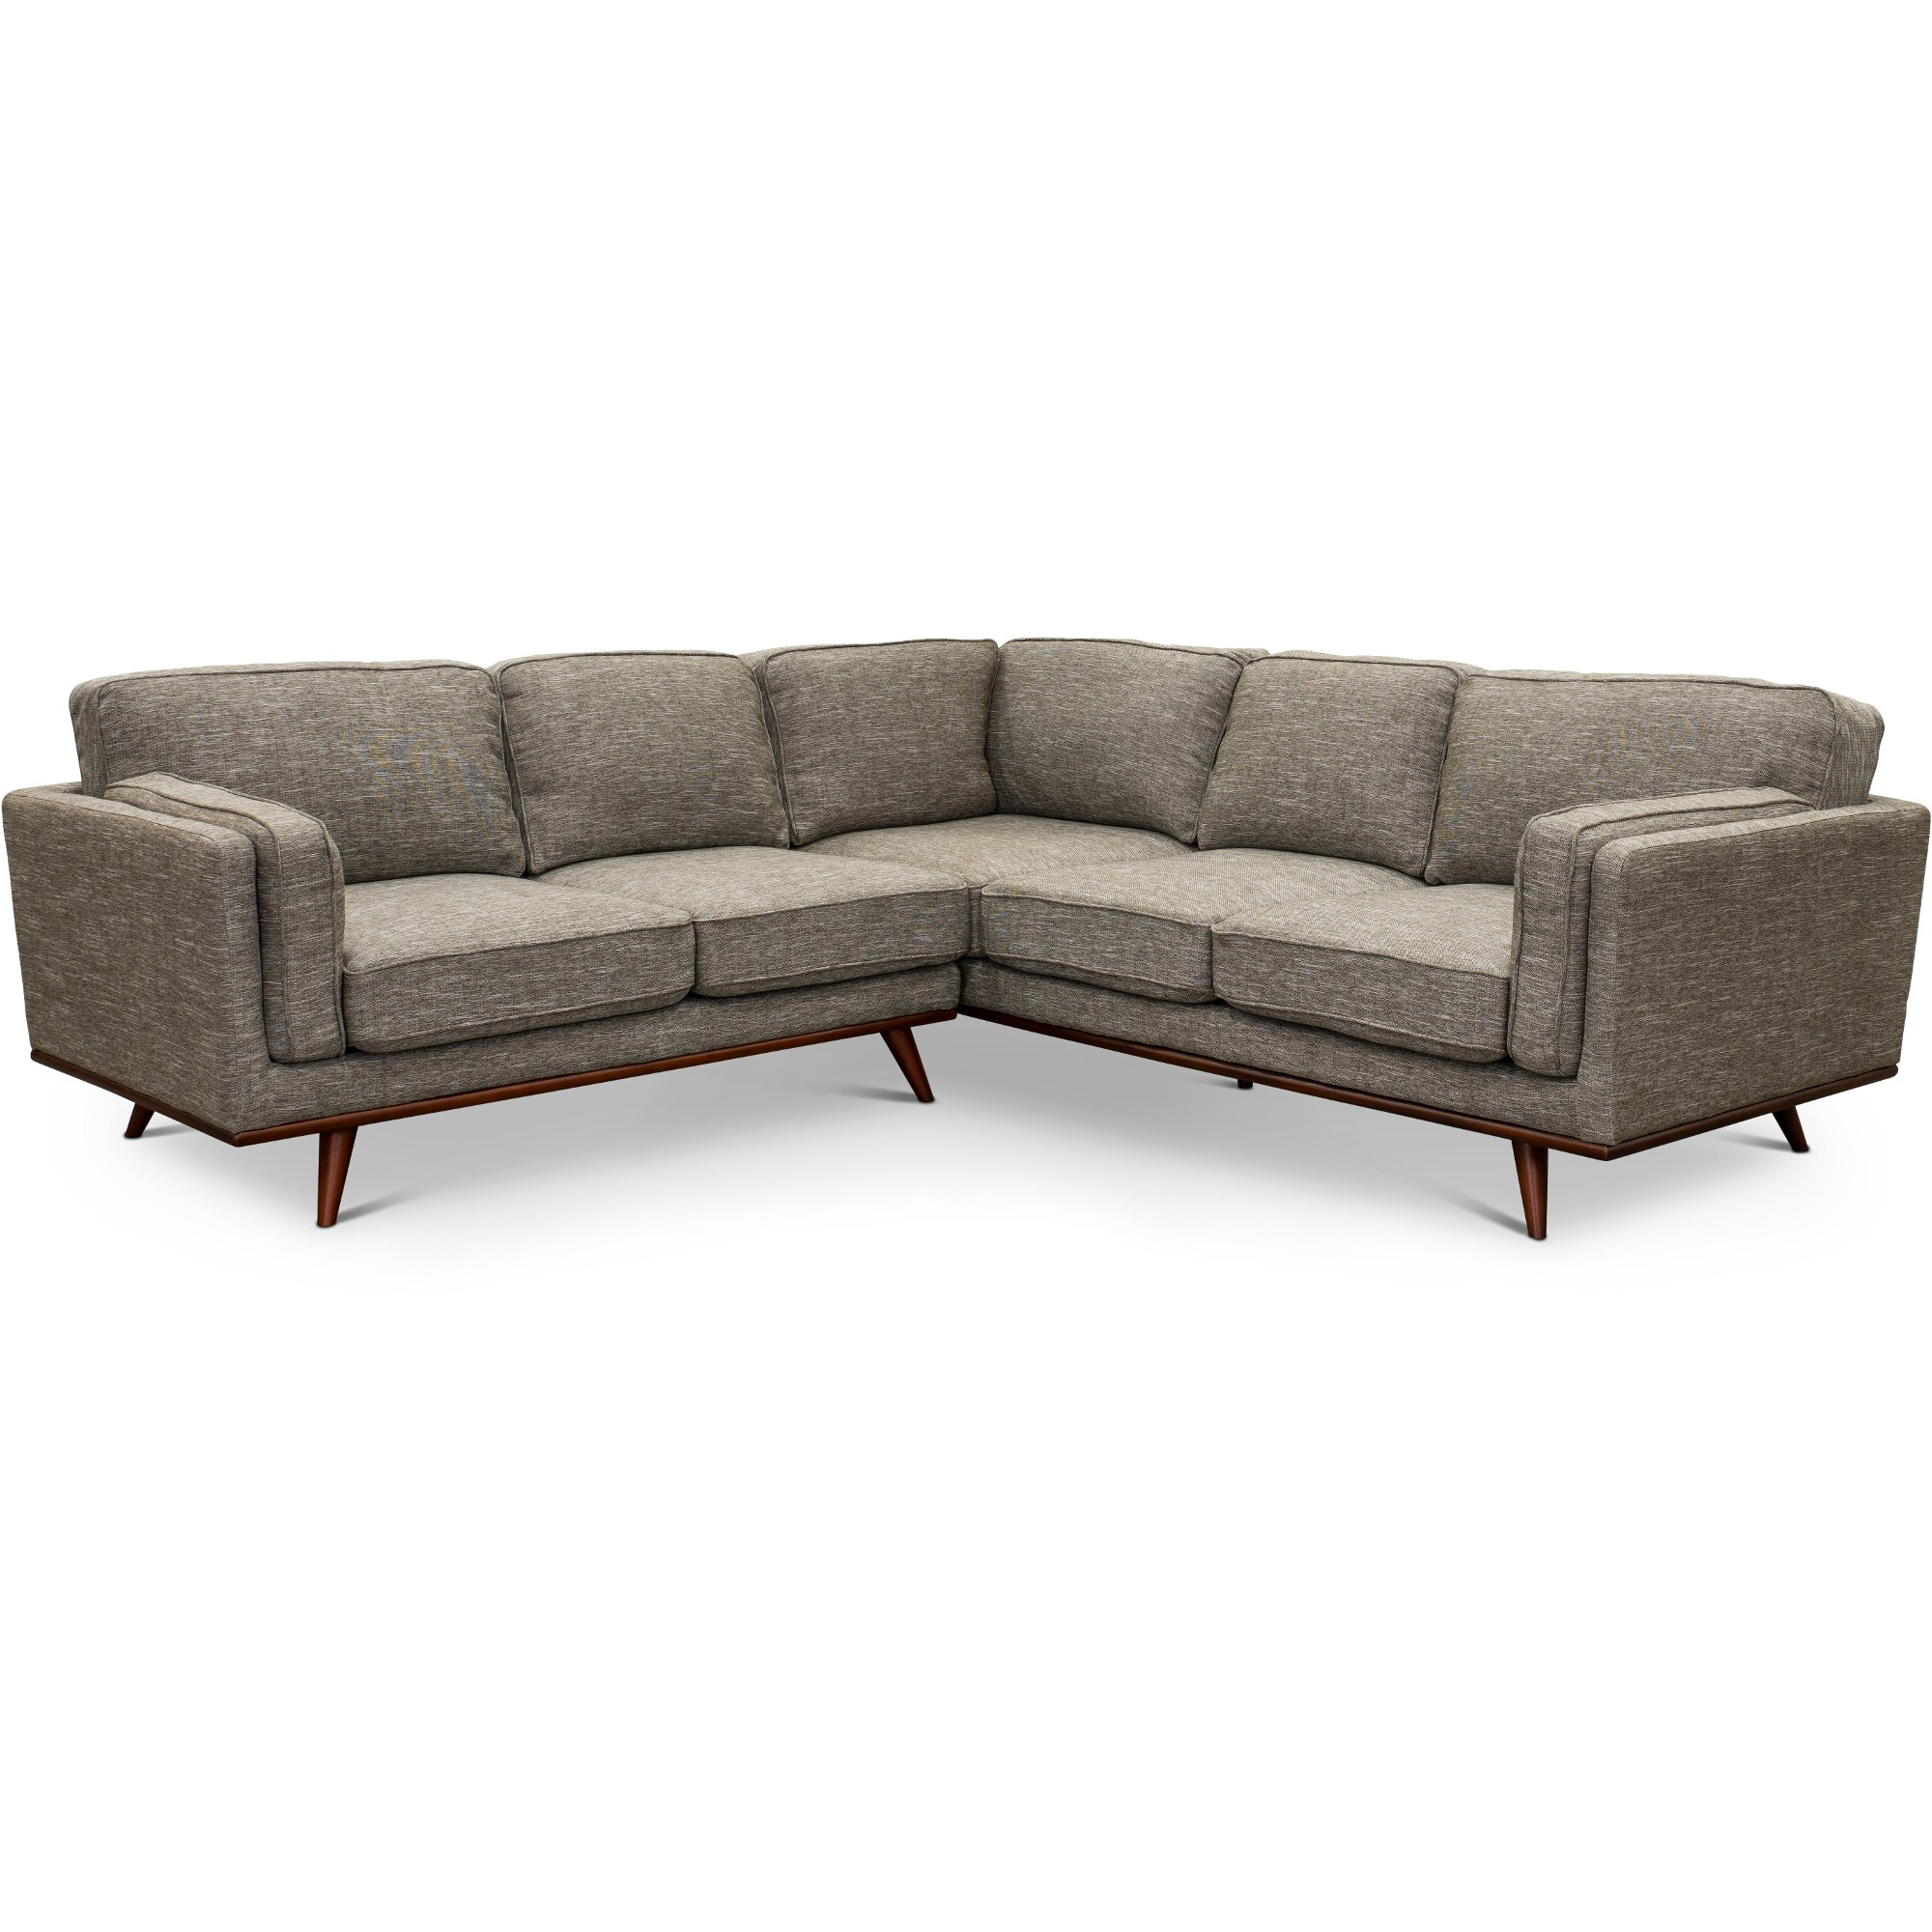 Gray 2 Piece Sectional Sofa With Laf